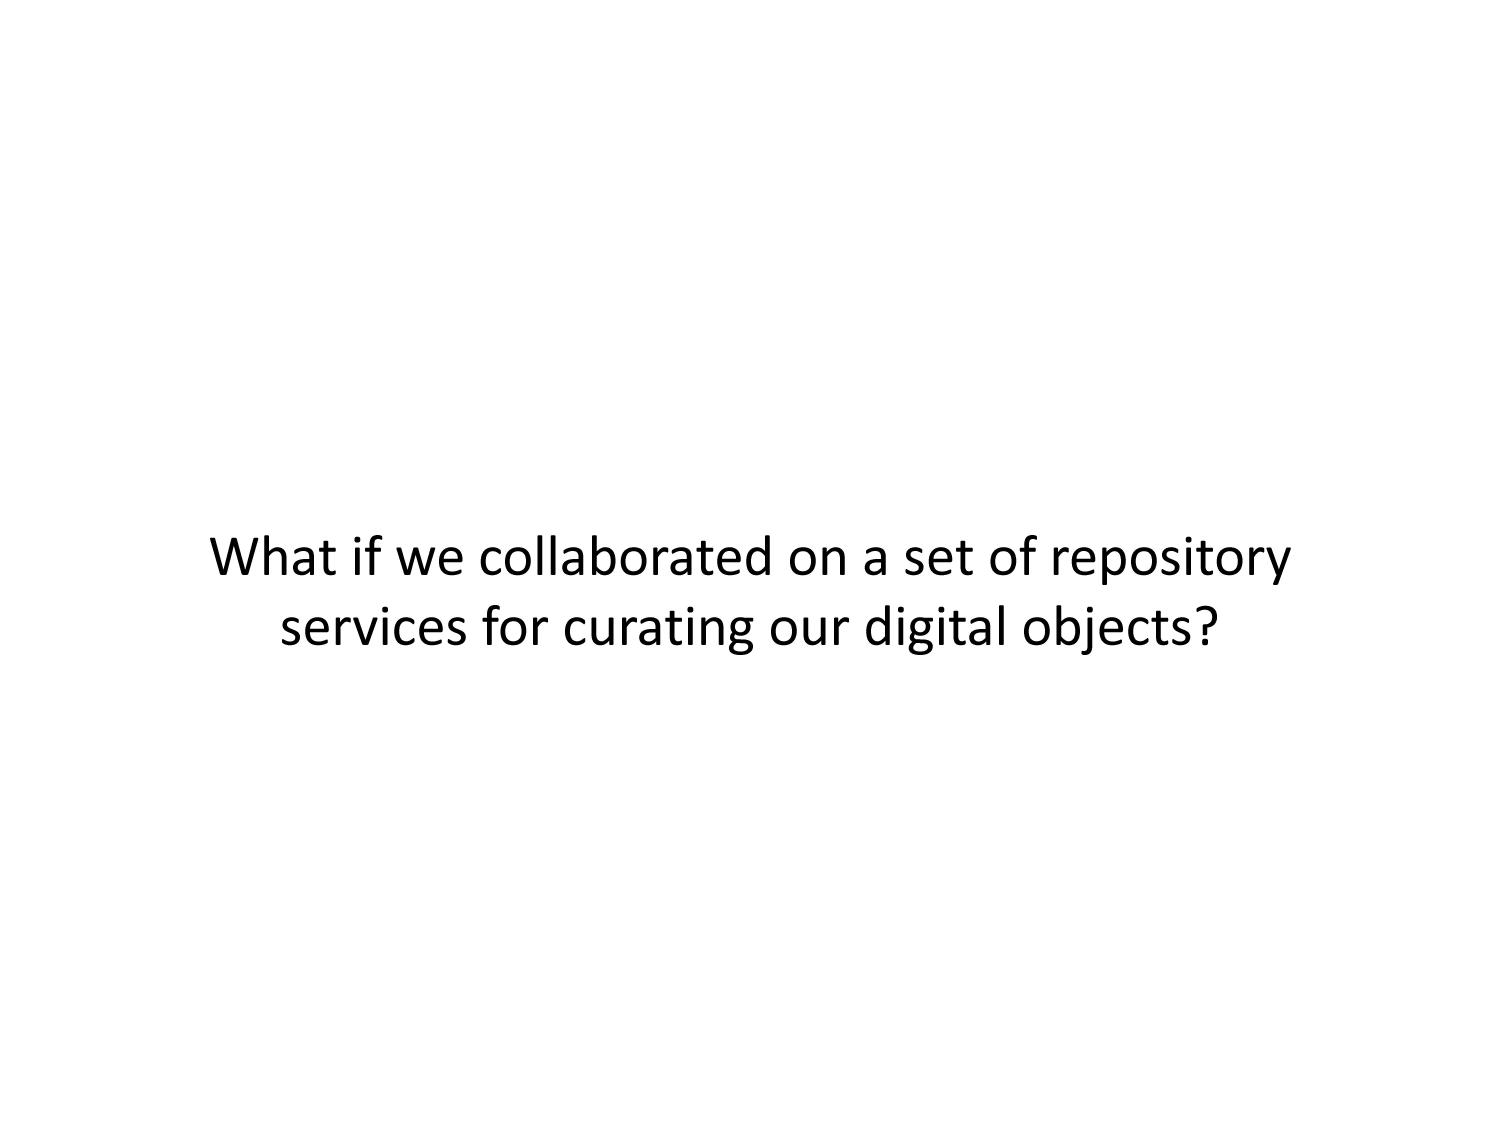 Collaborative Digital Repository Opportunities                                                                                                      [Sequence #]: 35 of 45